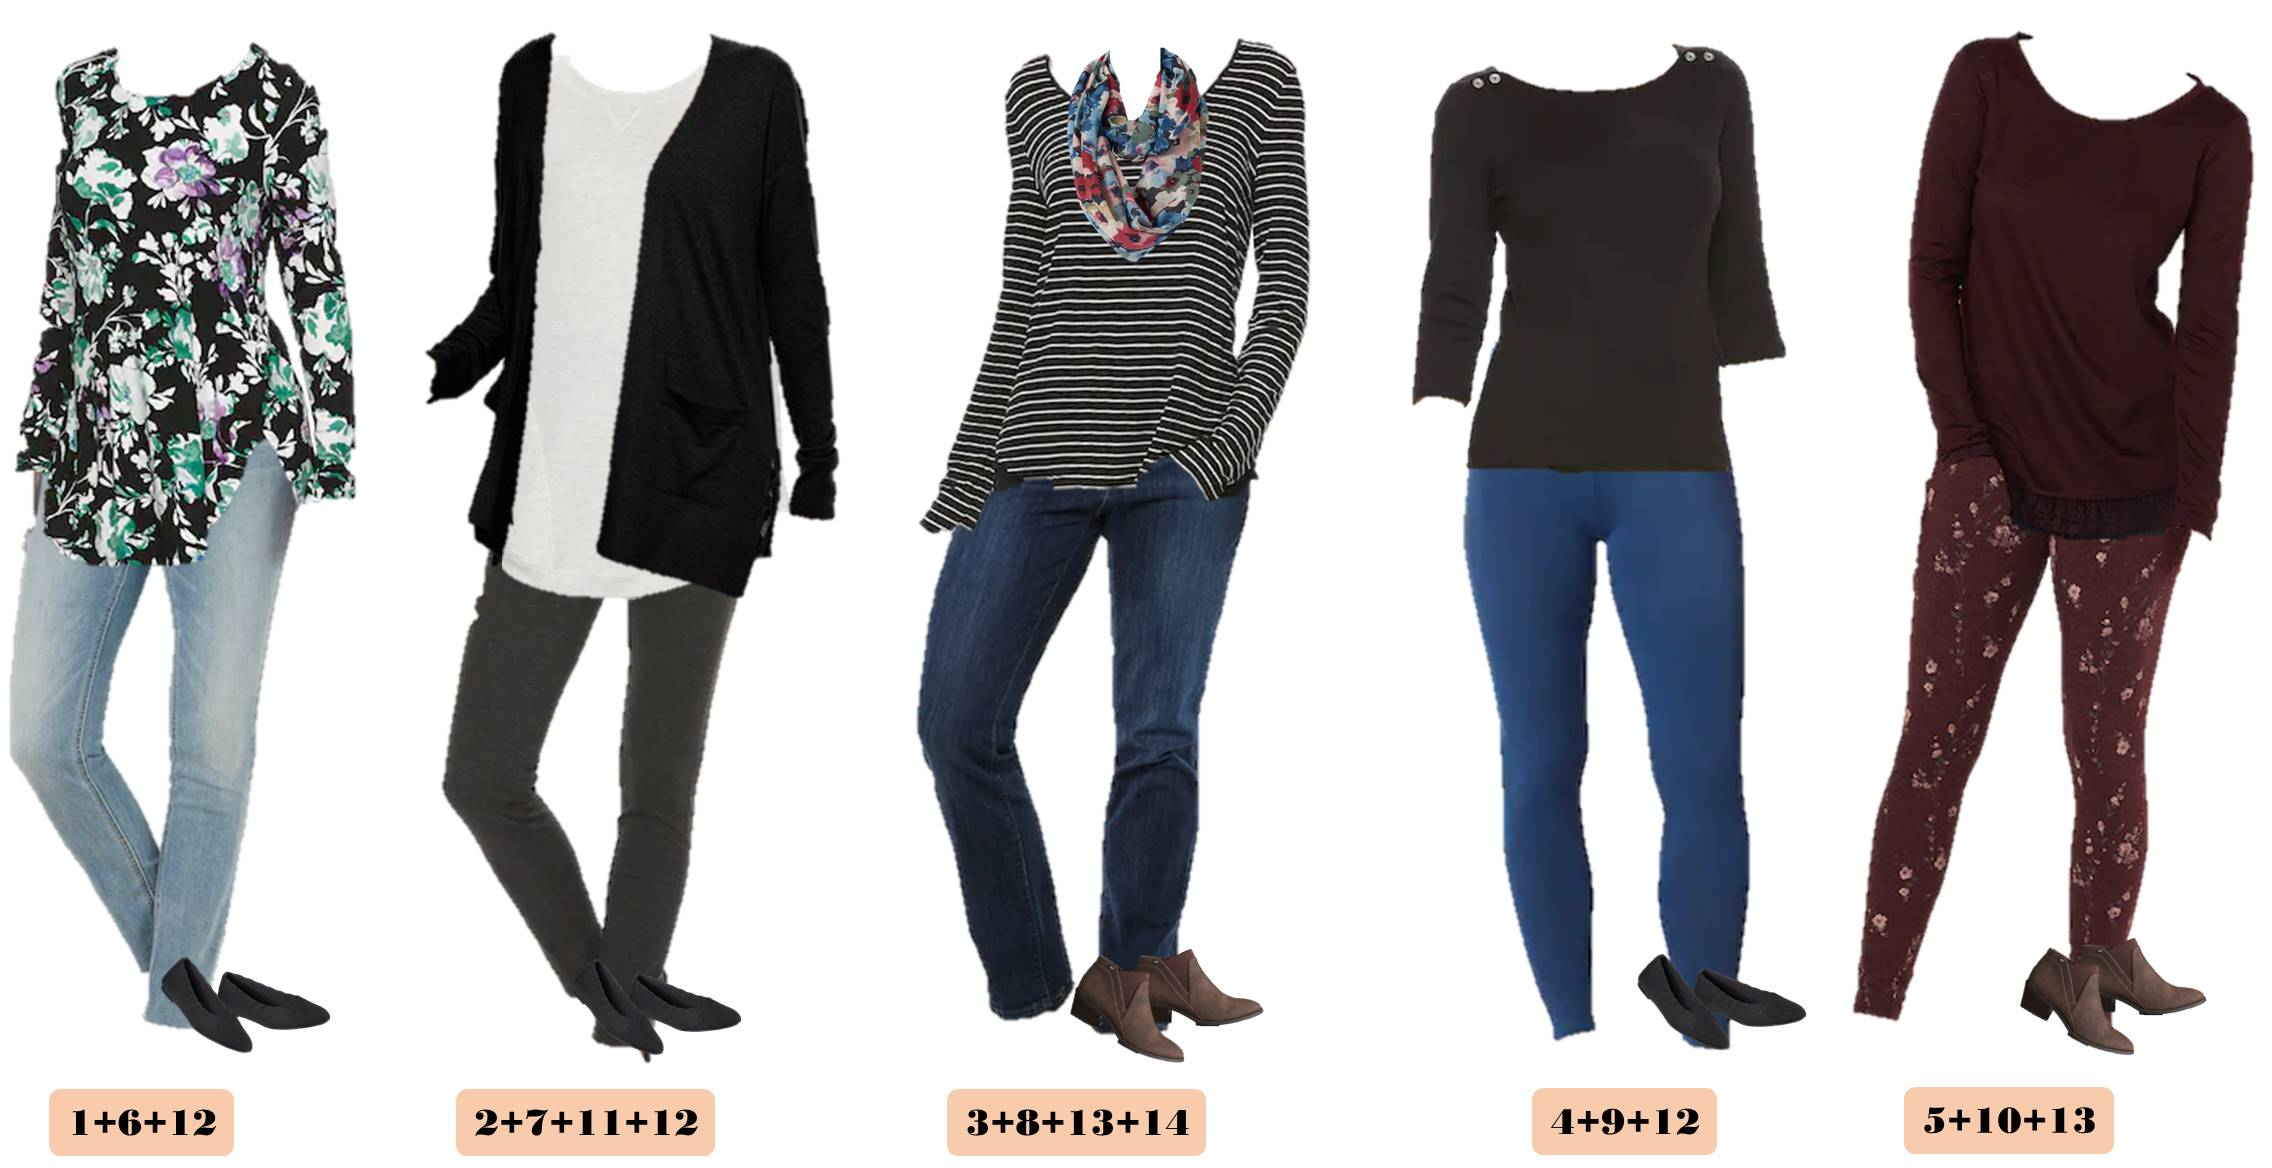 Kohls fall outfits that mix and match for fall capsule wardrobe